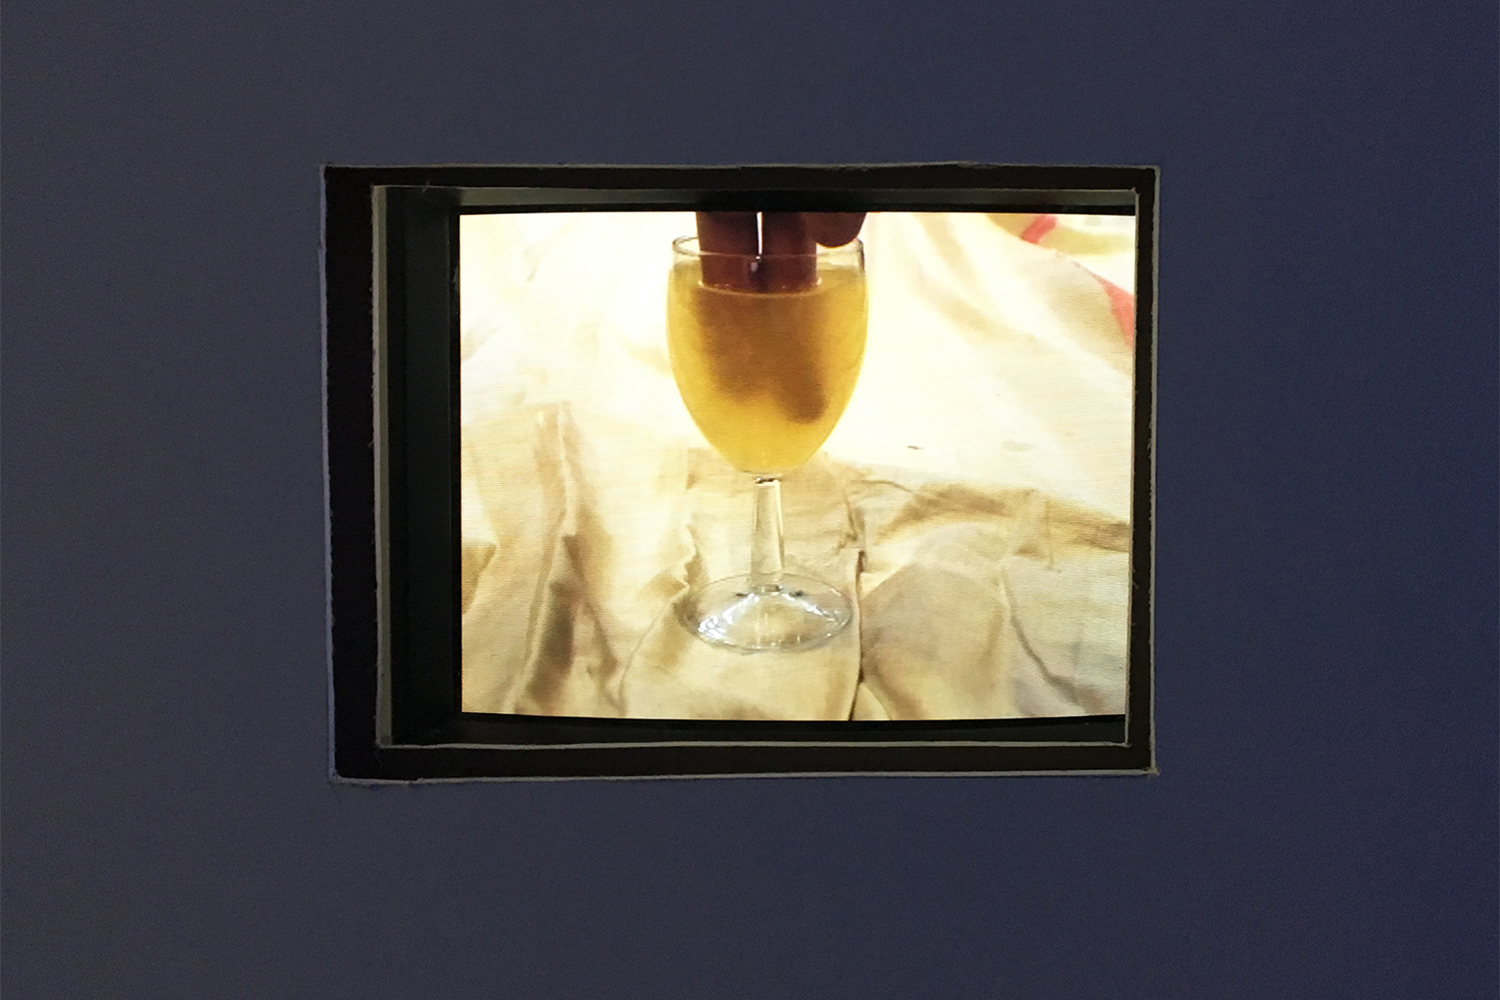 Laure Prouvost, Glass of Champagne, 2007